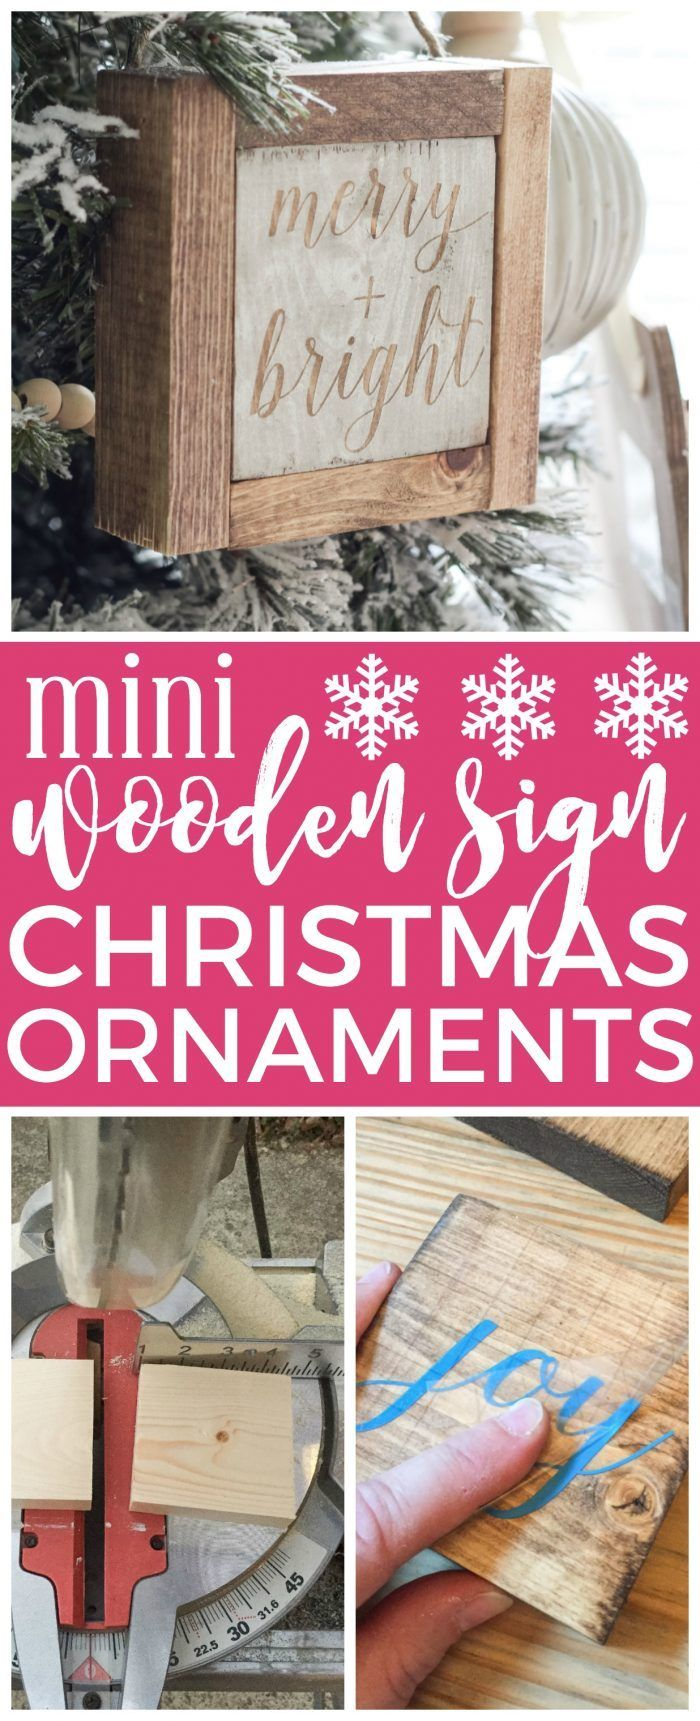 Christmas wooden christmas memories hanging sign sold out - Mini Wooden Sign Christmas Ornaments Create A Simple Wooden Sign With A Cute Saying And